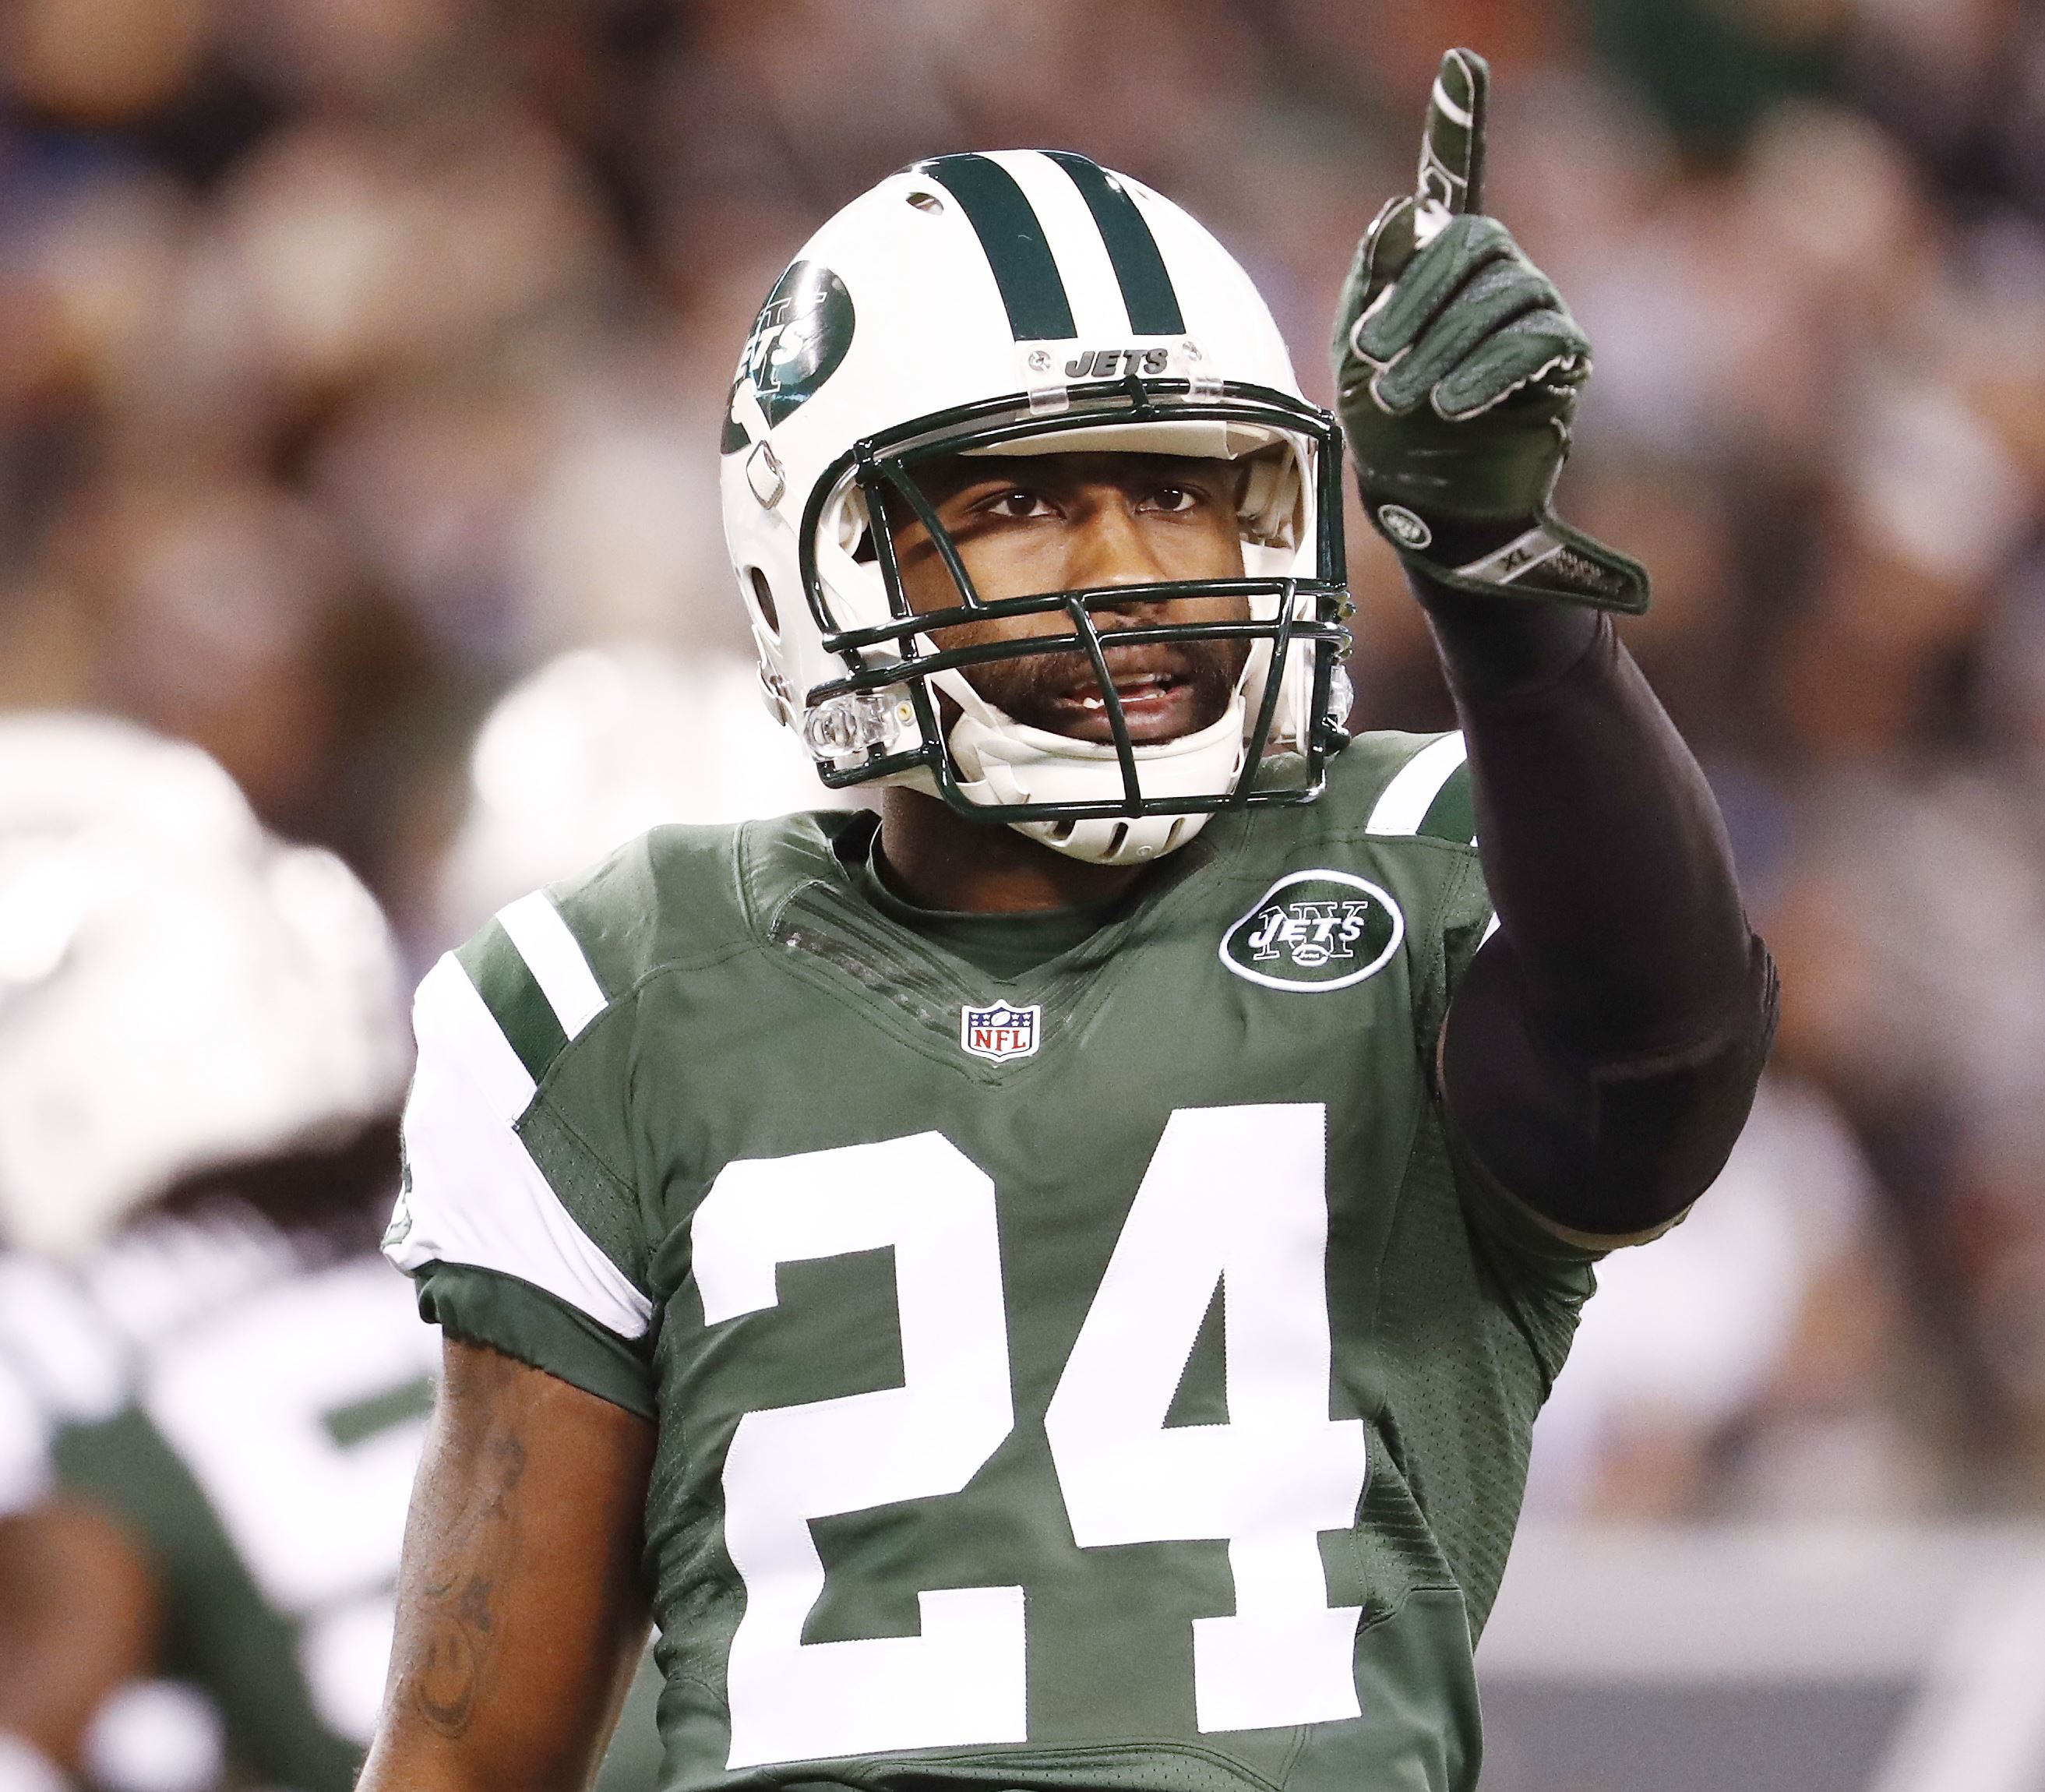 All charges dismissed against ex-New York Jet Darrelle Revis